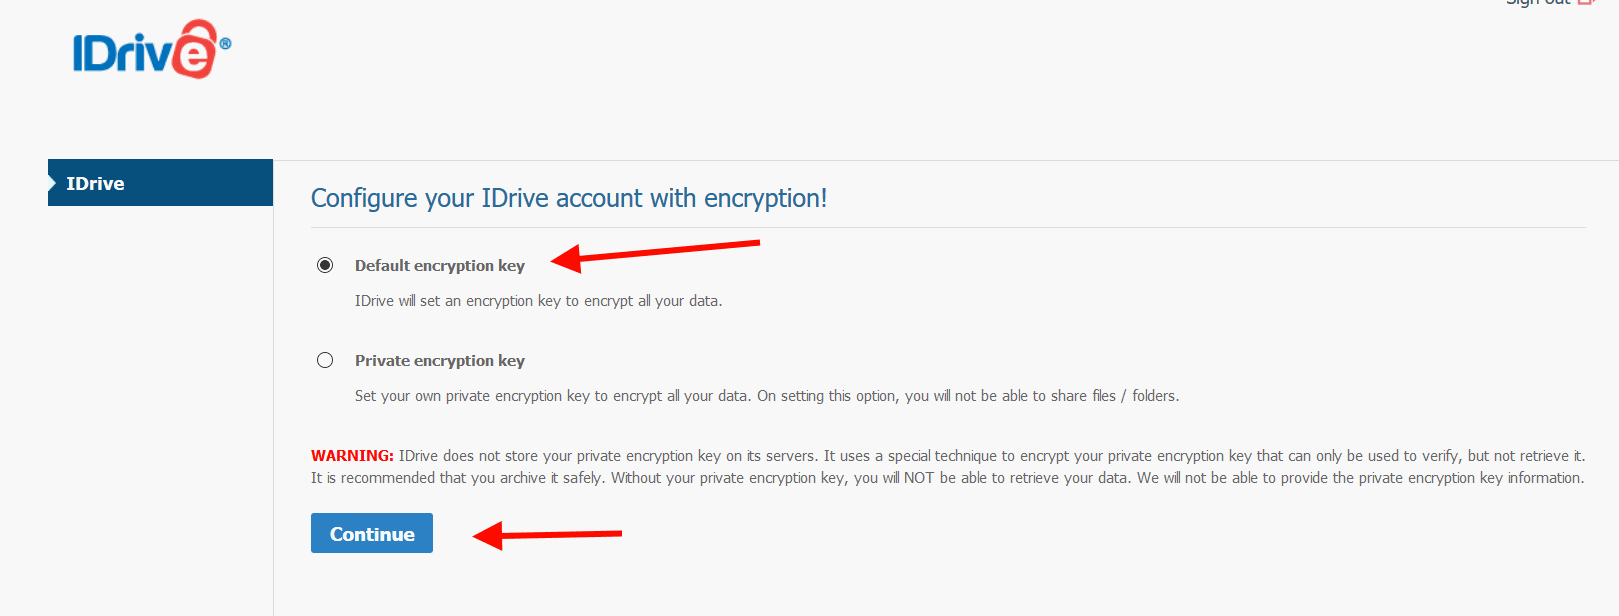 The IDrive Offers Default Encryption